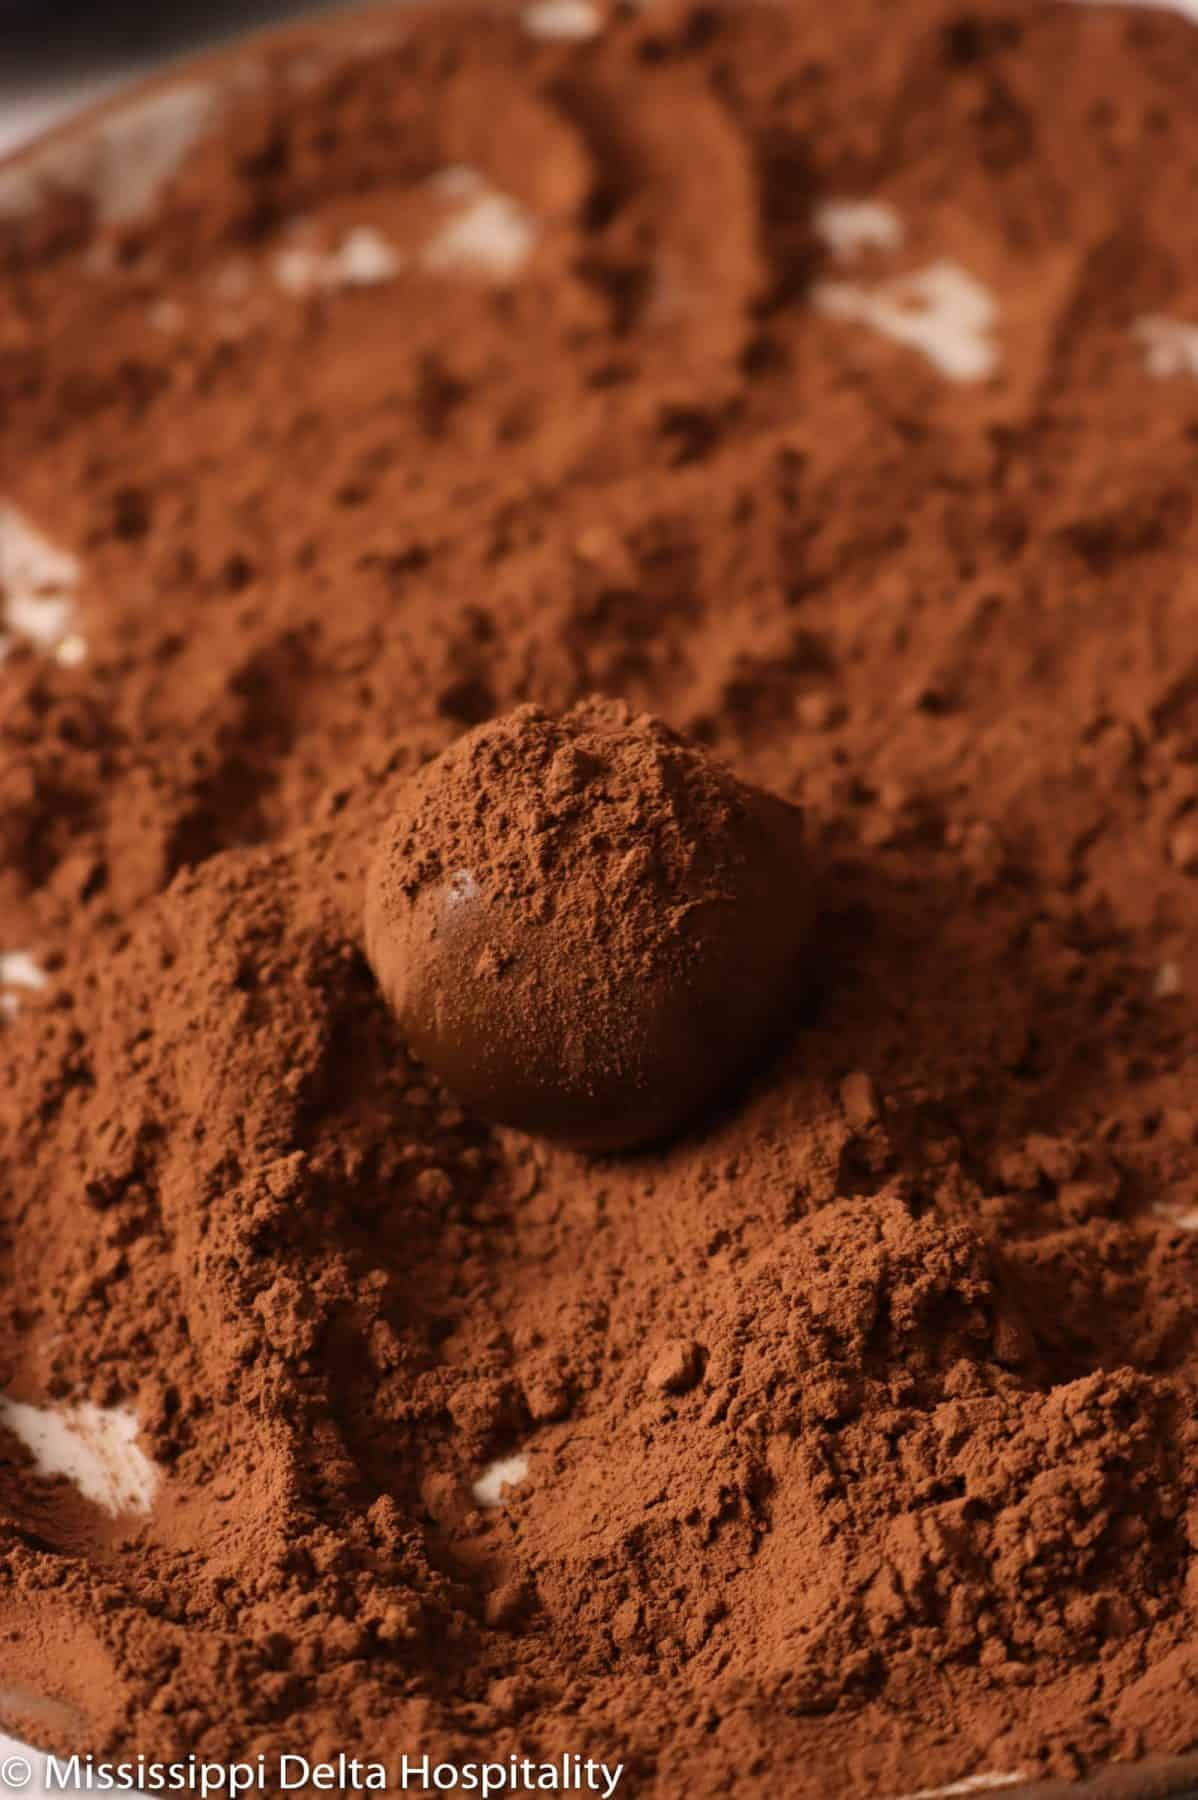 chocolate truffle with cocoa powder sprinkled over it